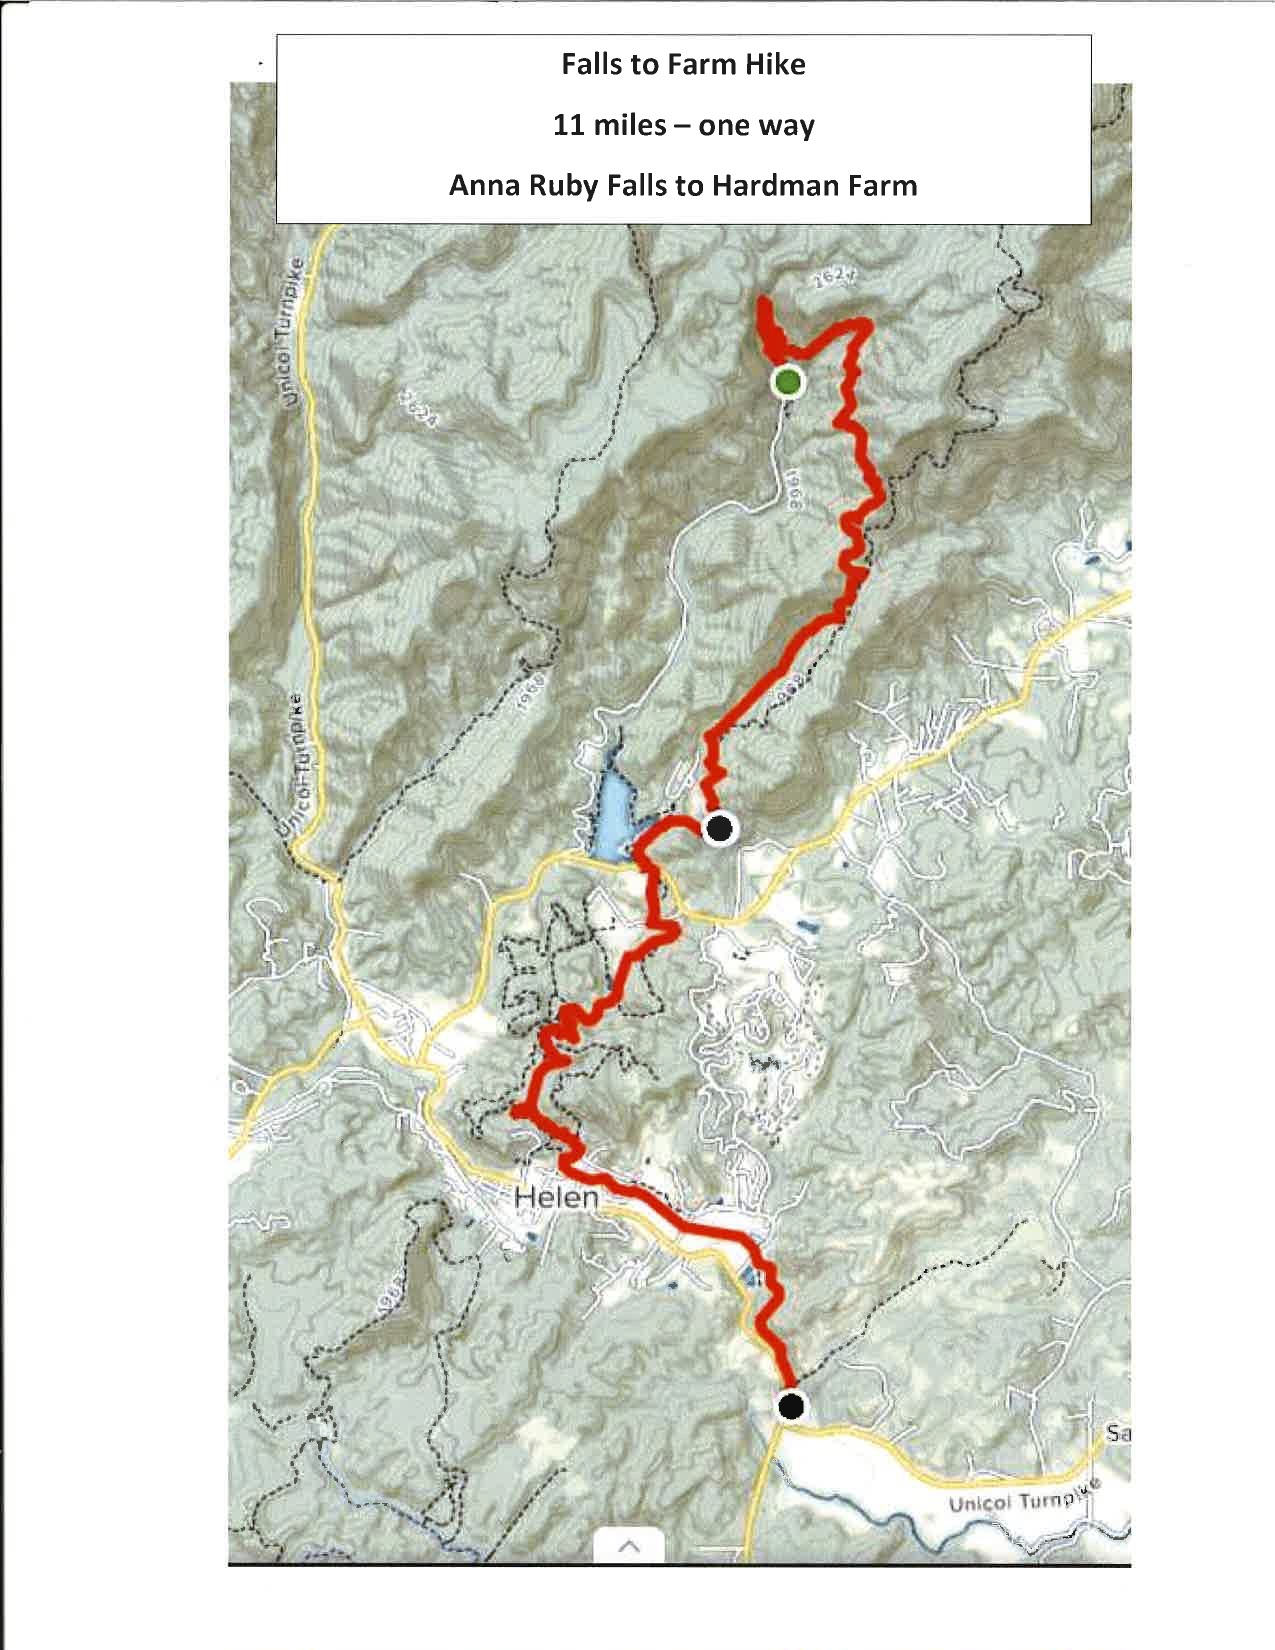 This map outlines a hike from Anna Ruby Falls, to Unicoi State Park, Helen and the Hardman Farm. (Image courtesy Will Wager/Smithgall Woods State Park)